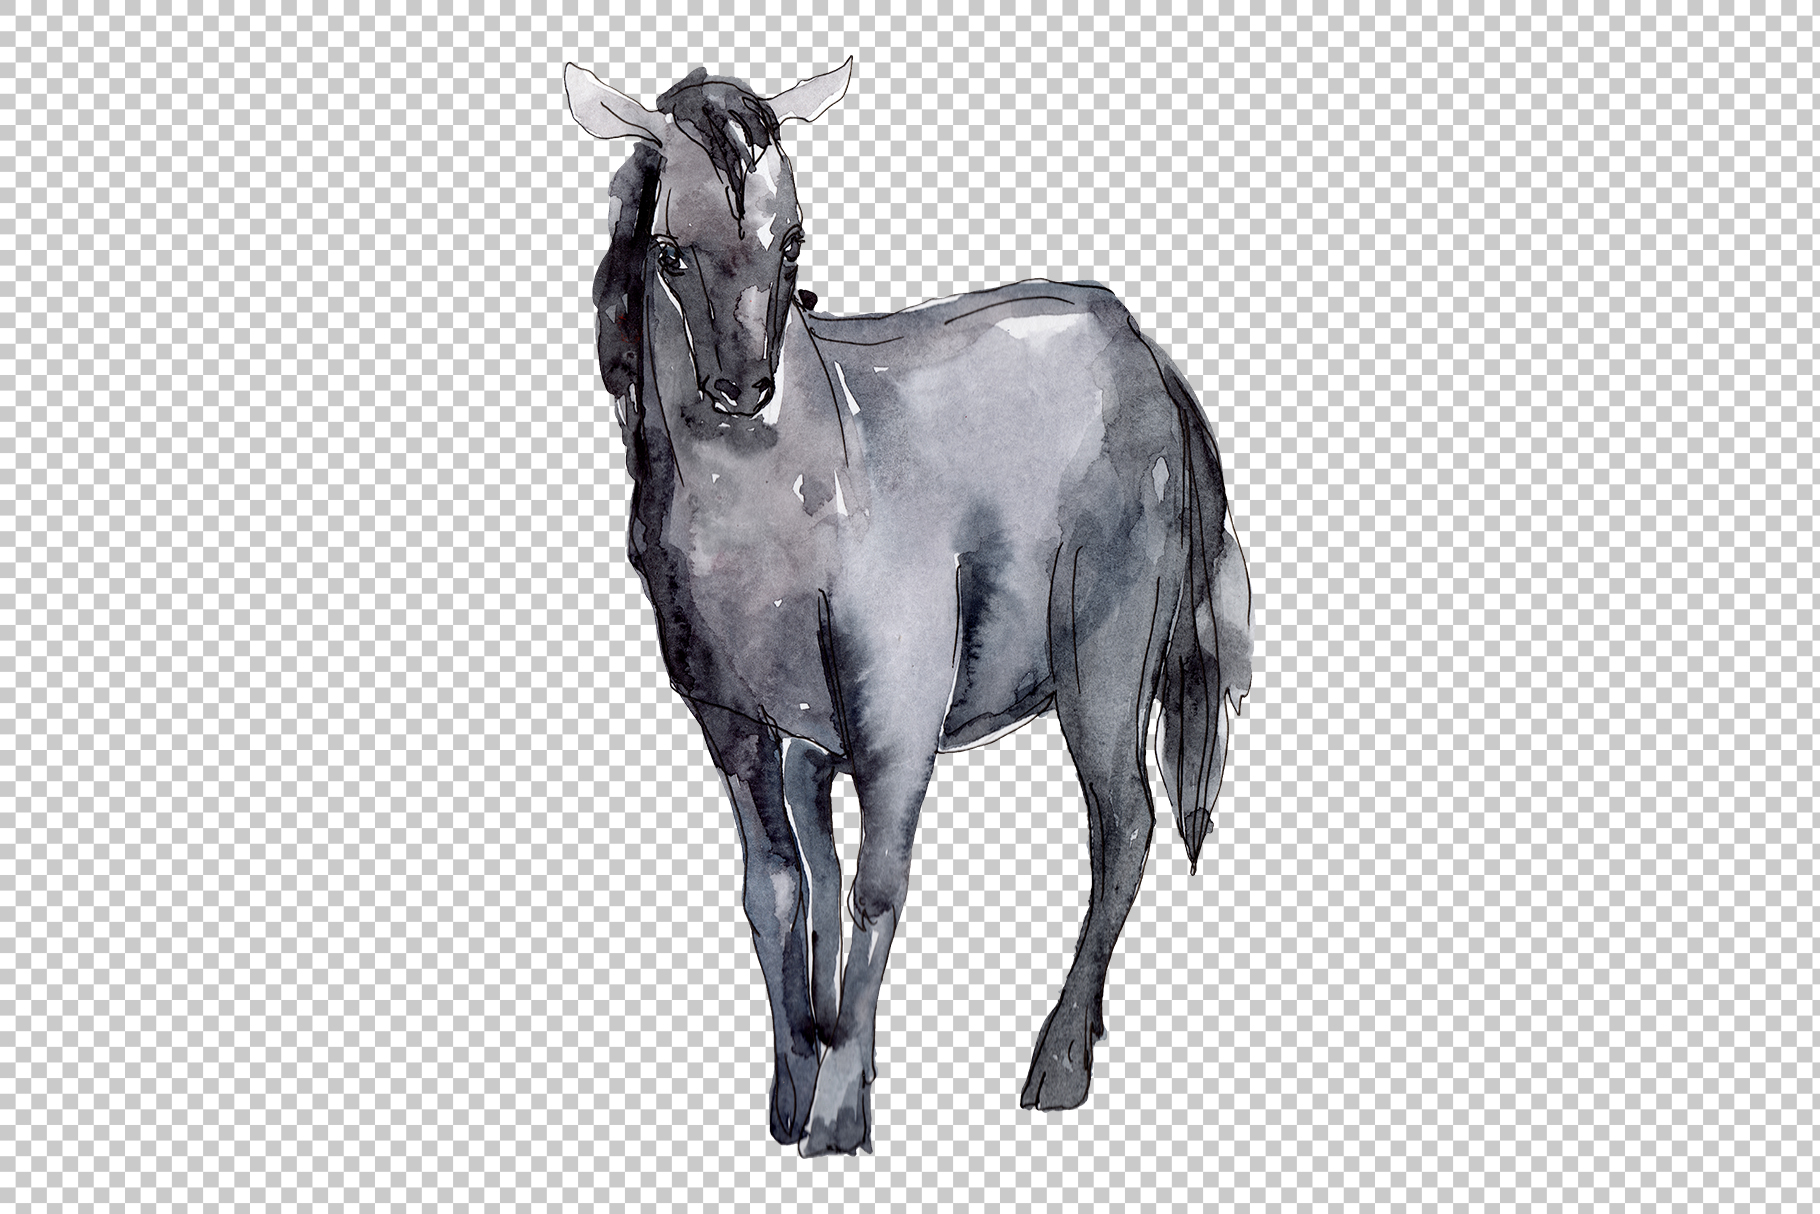 Farm animals Horse, foal Watercolor png example image 2